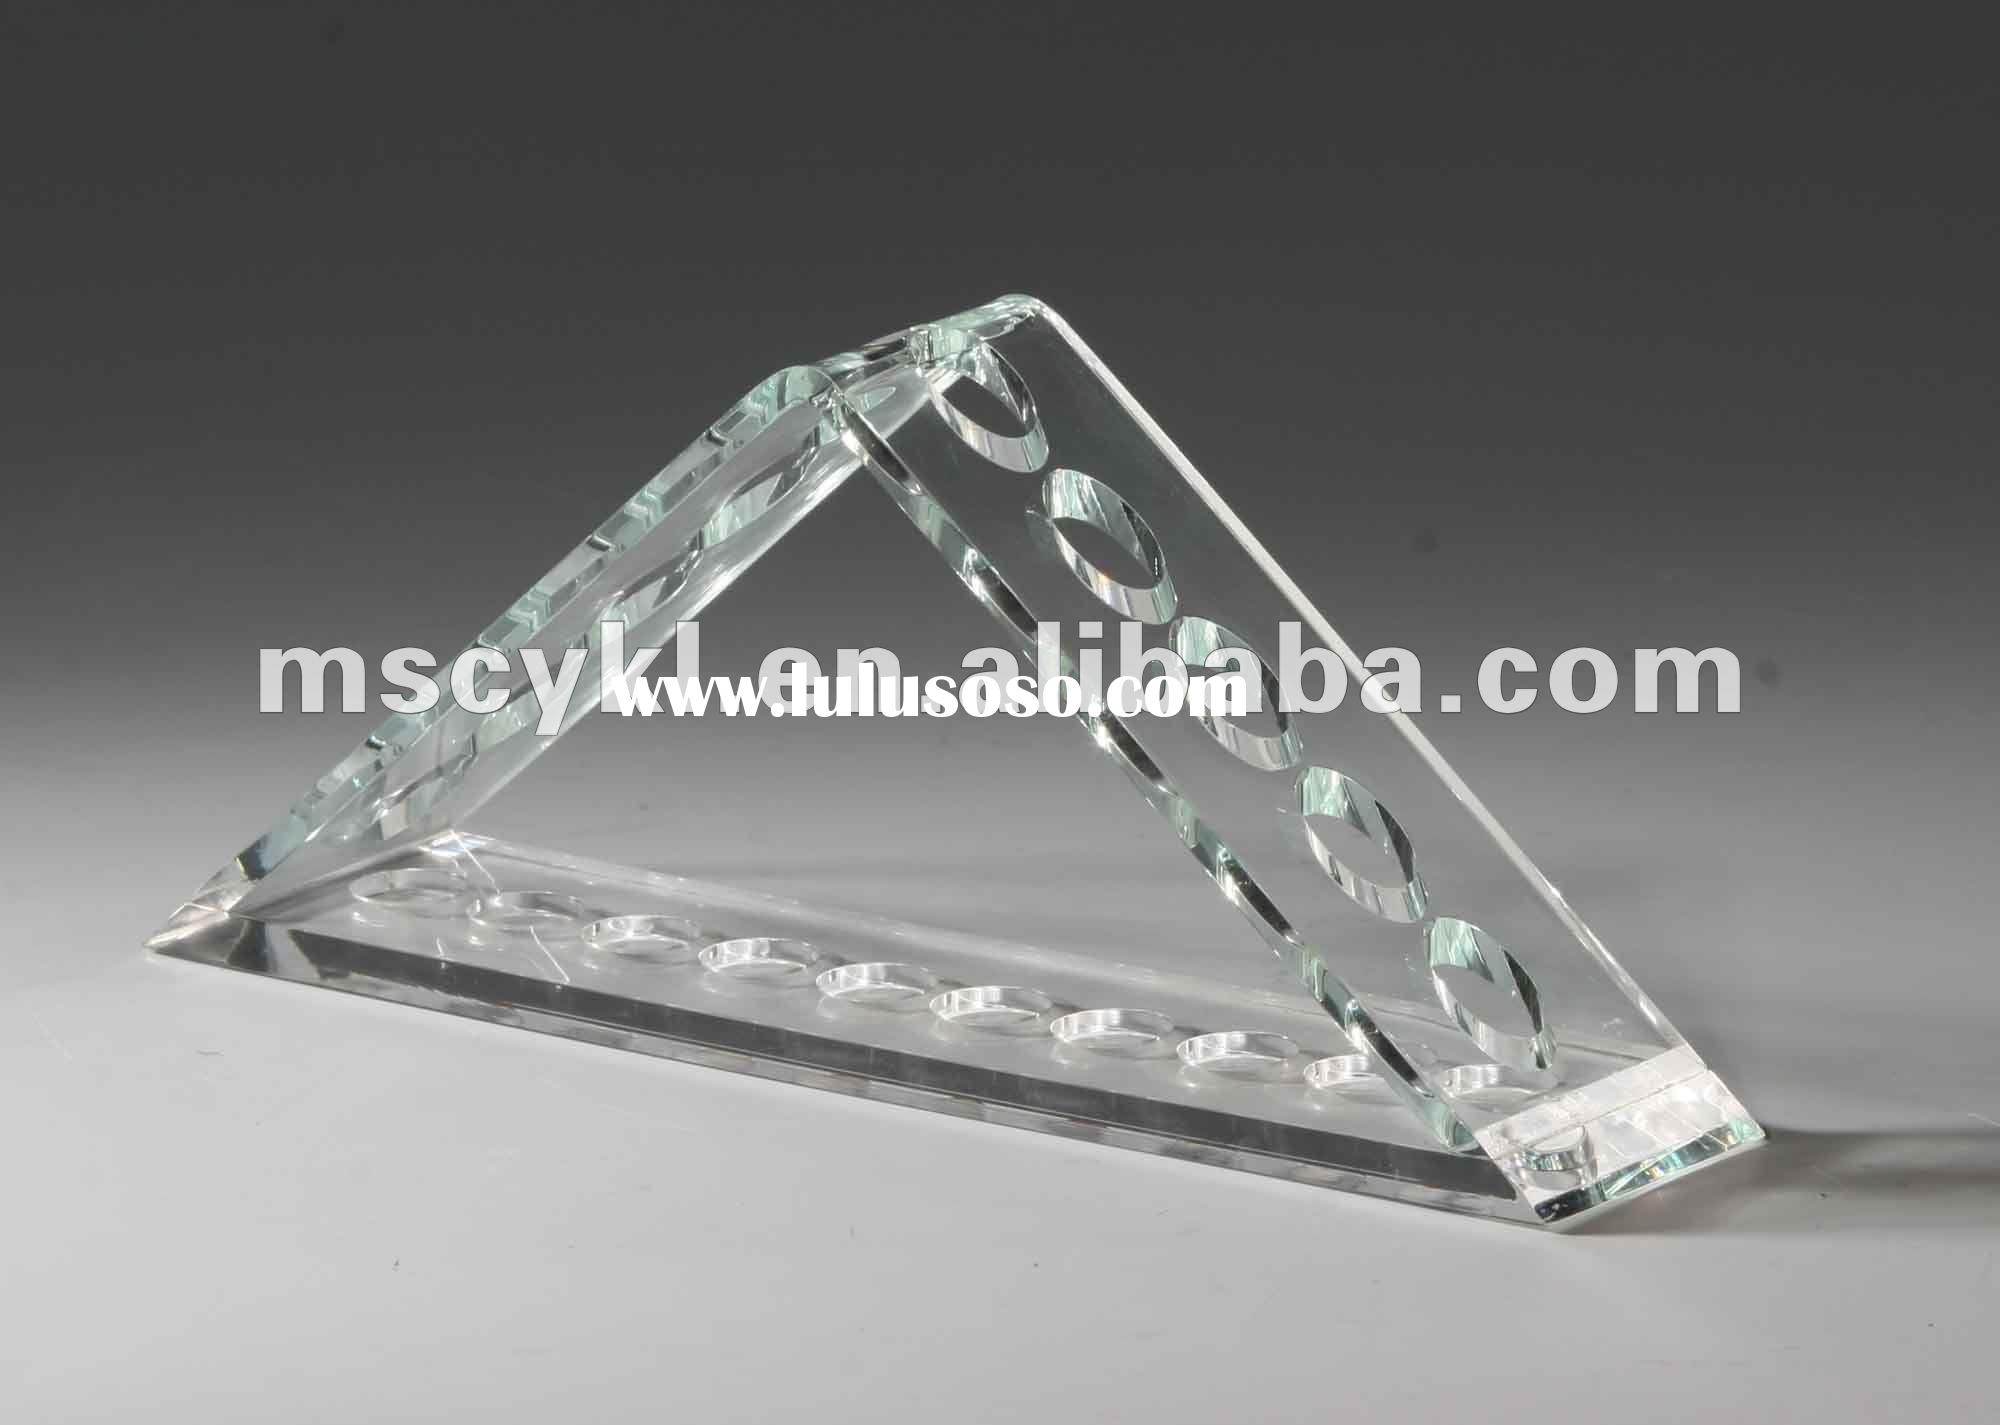 jewelry &cosmetic display/Acrylic display /Display rack